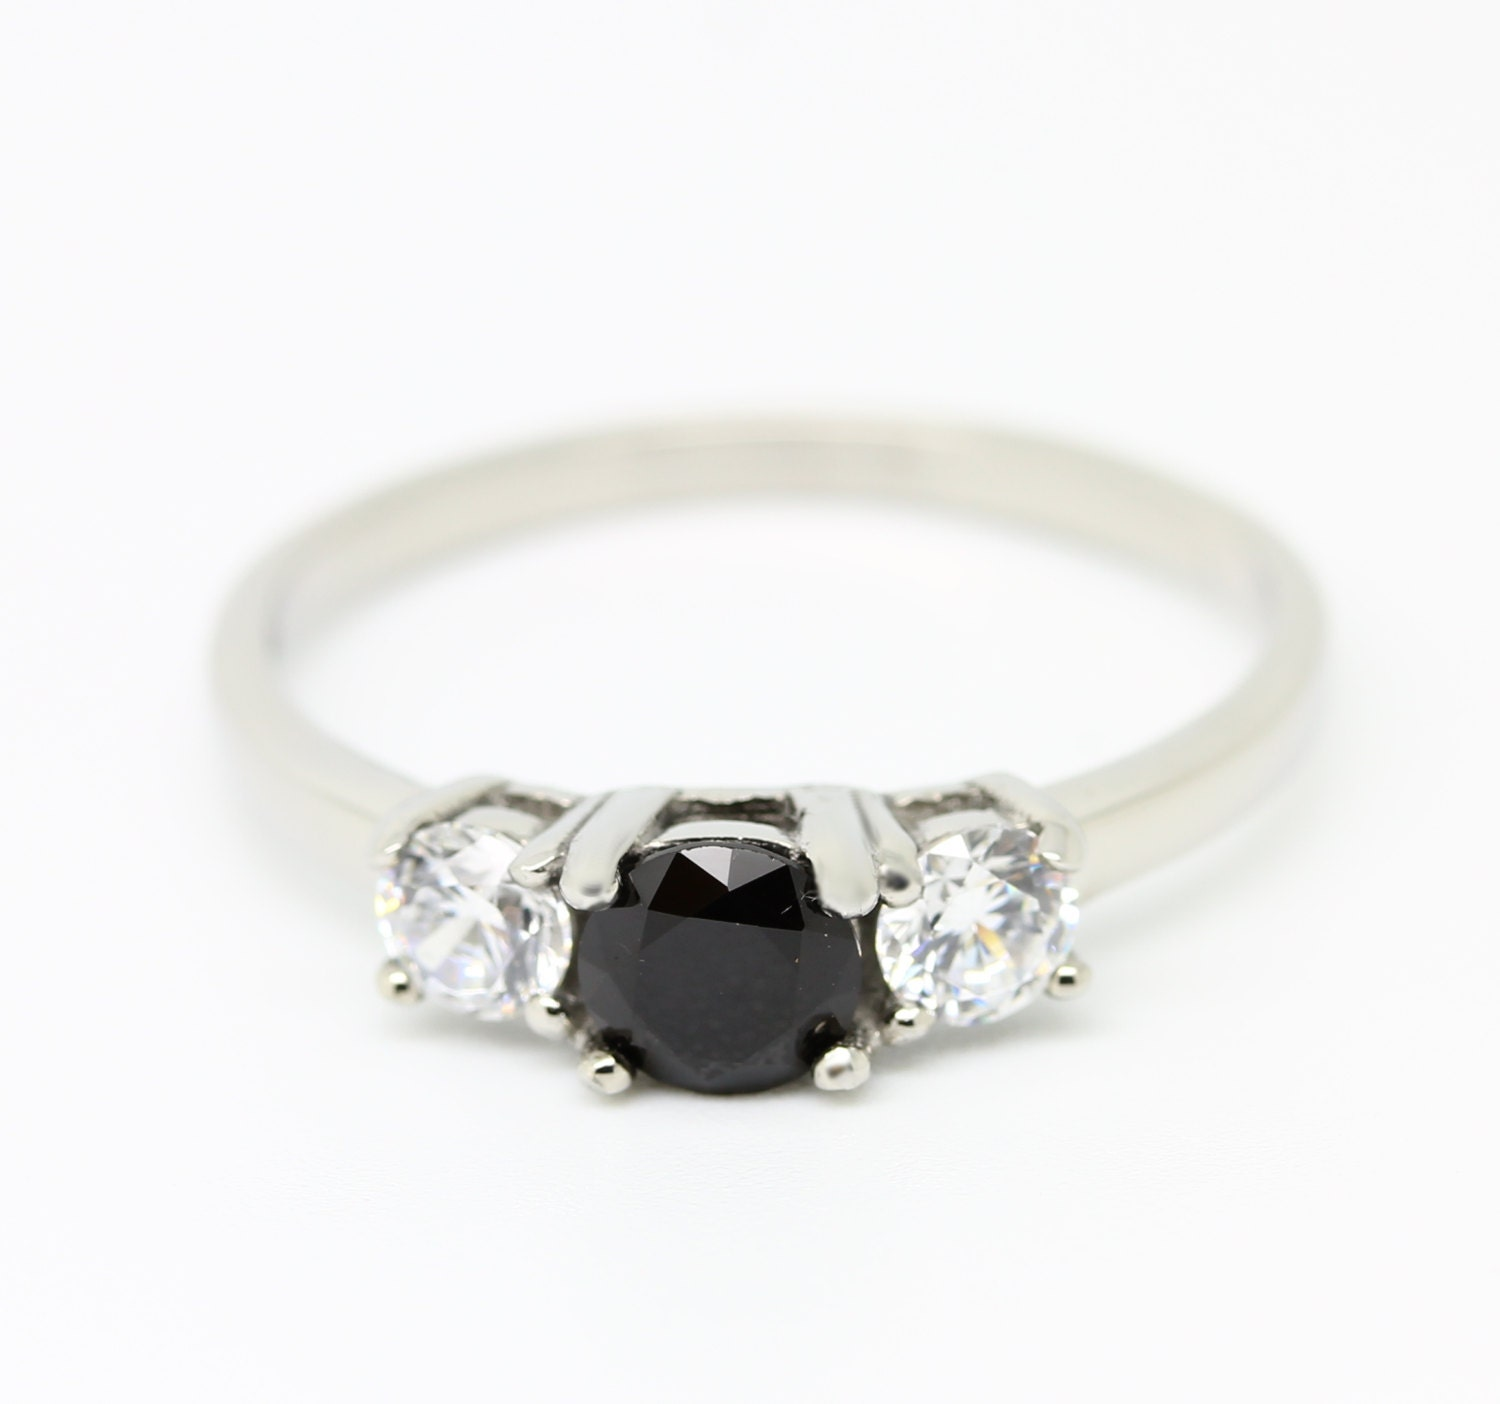 1ct genuine Onyx and white sapphire Trilogy ring  Availabie in Sterling silver or titanium  engagement ring  wedding ring